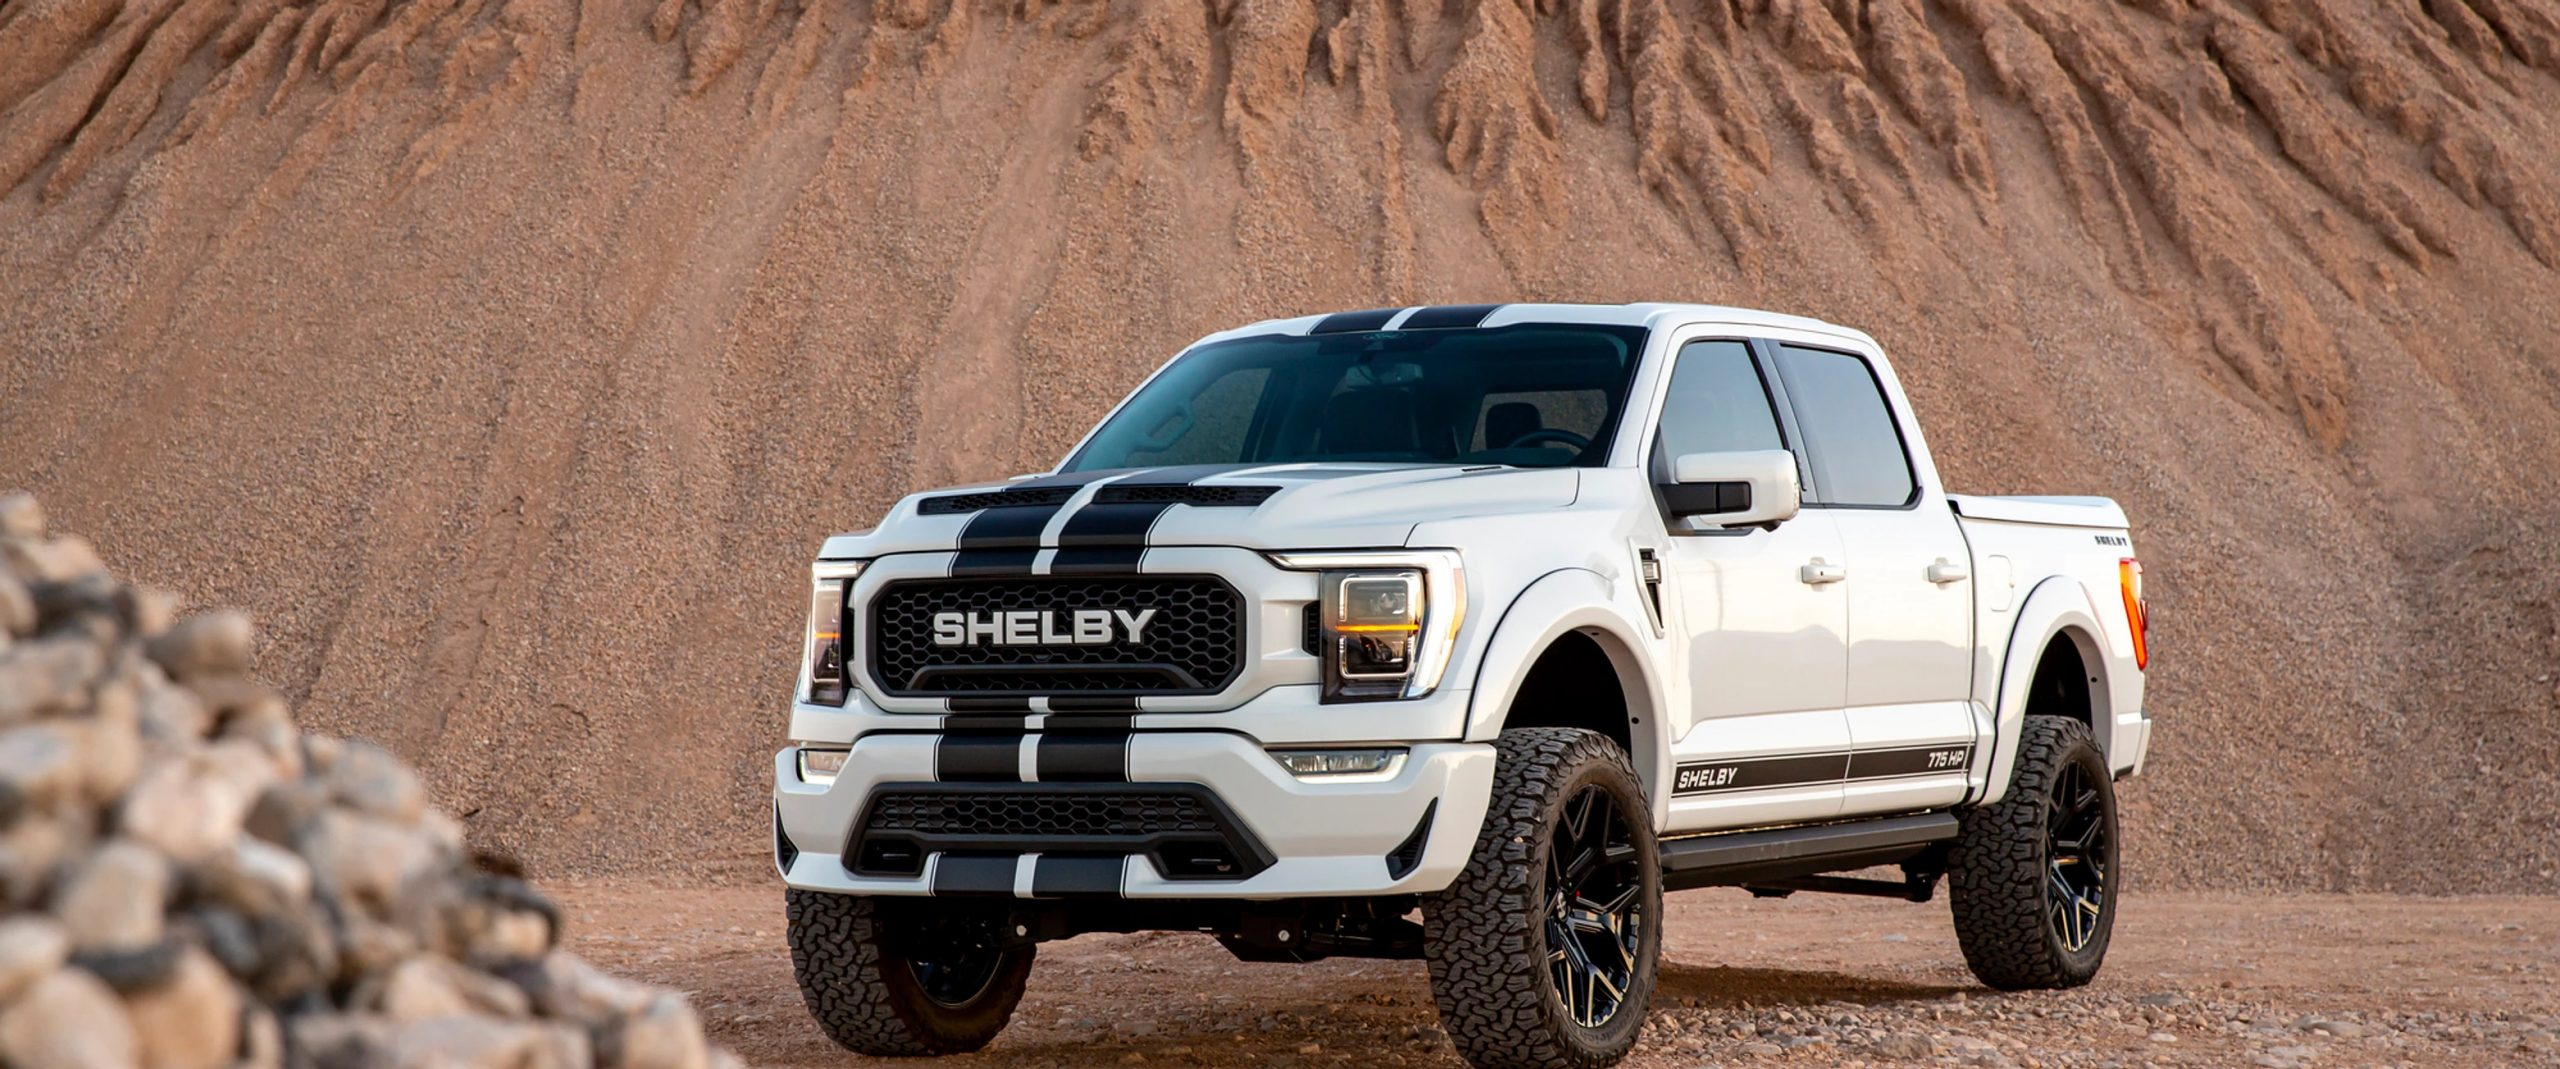 Shelby F150 2021 cover